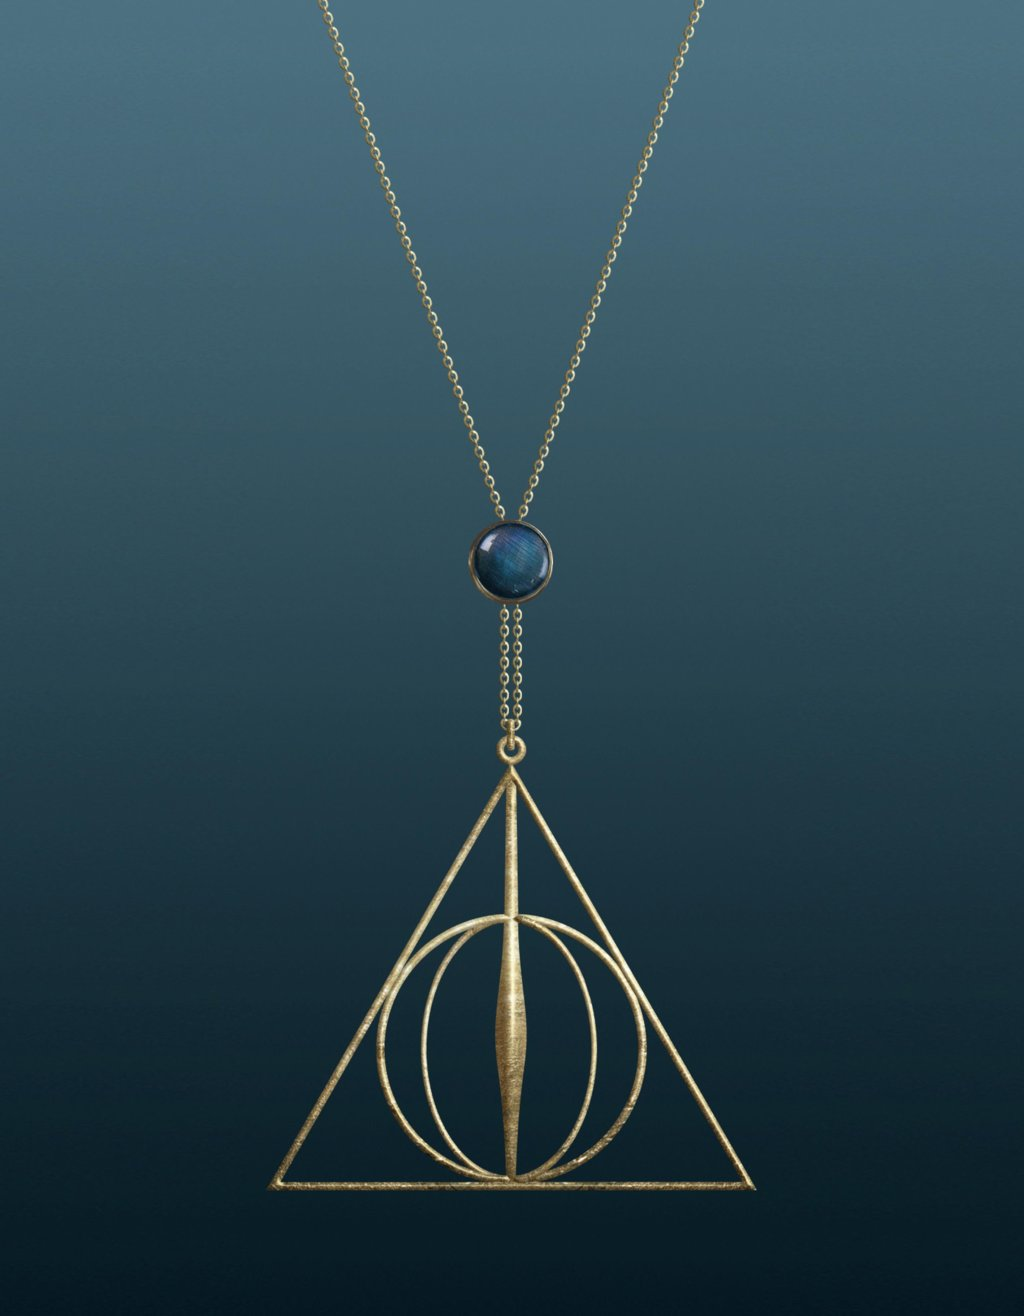 The Deathly Hallows - Pottermore